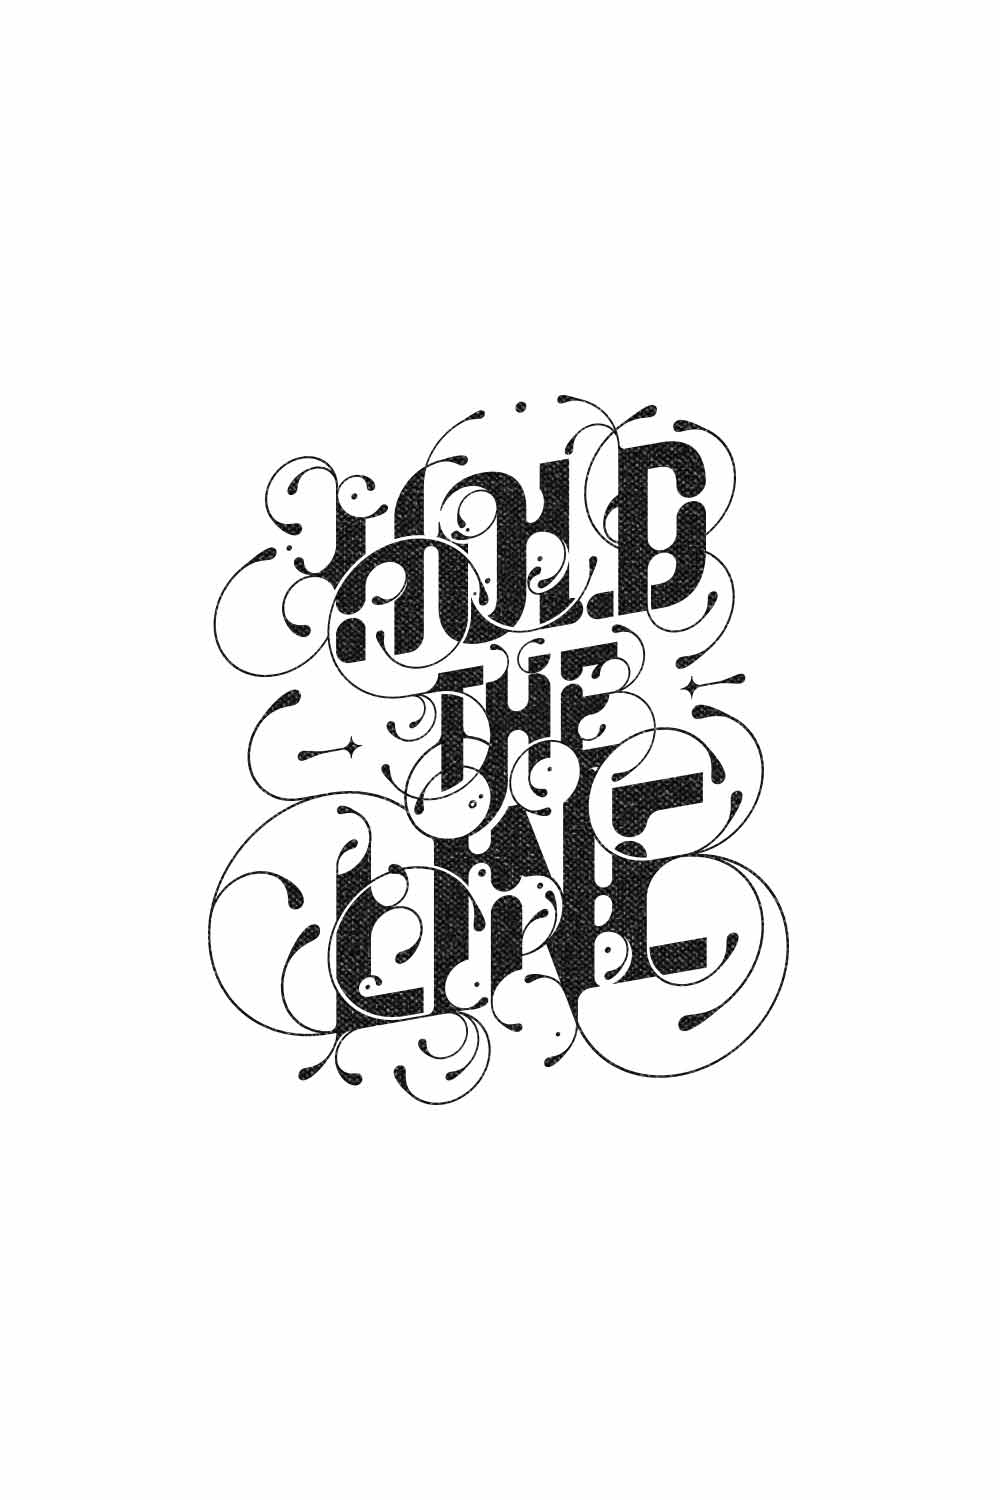 Hold-the-line-2